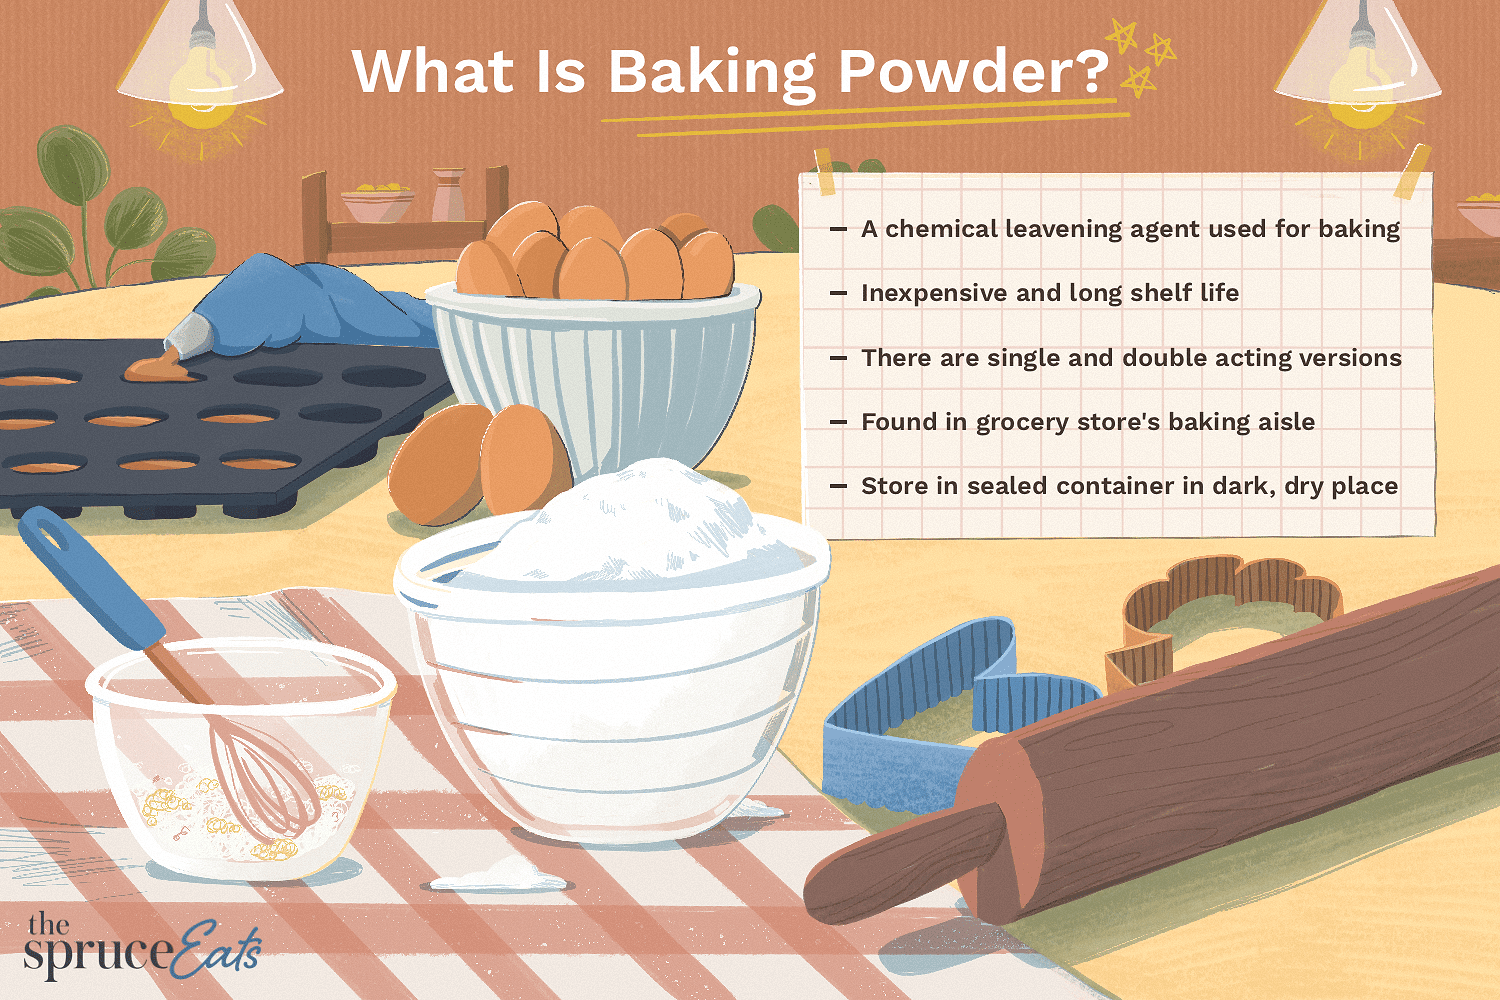 illustration showing facts about baking powder